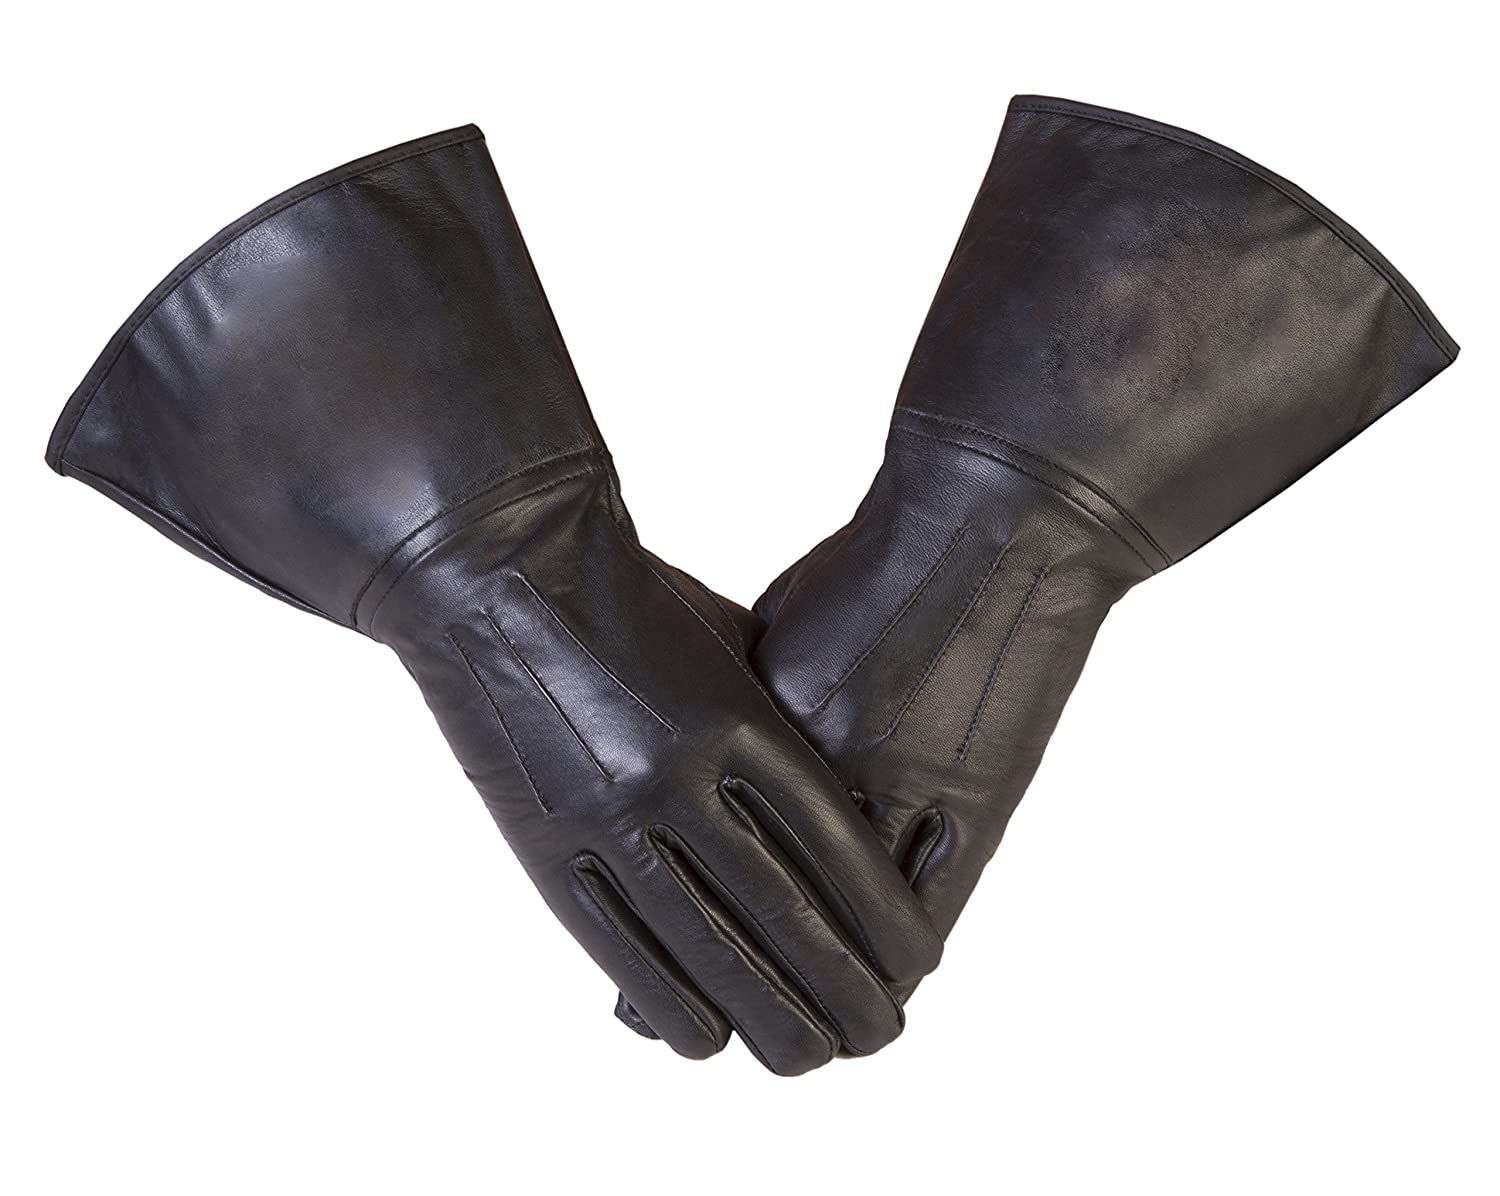 Black Gauntlet Real Leather 501st Approved Gloves with Three Darts (M-9)